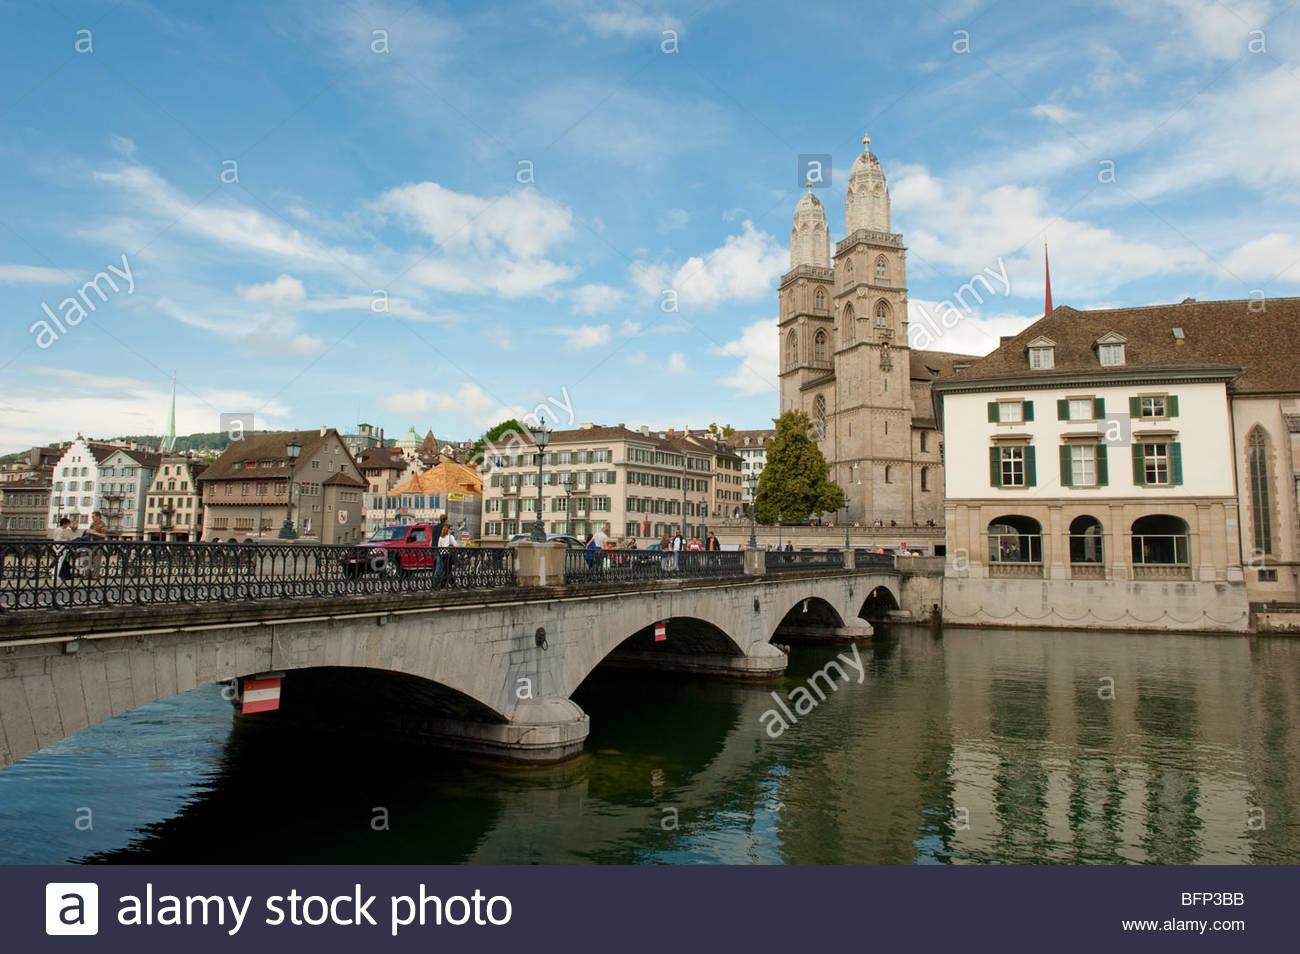 Bridge over the Limmat River in Zurich - Stock Image